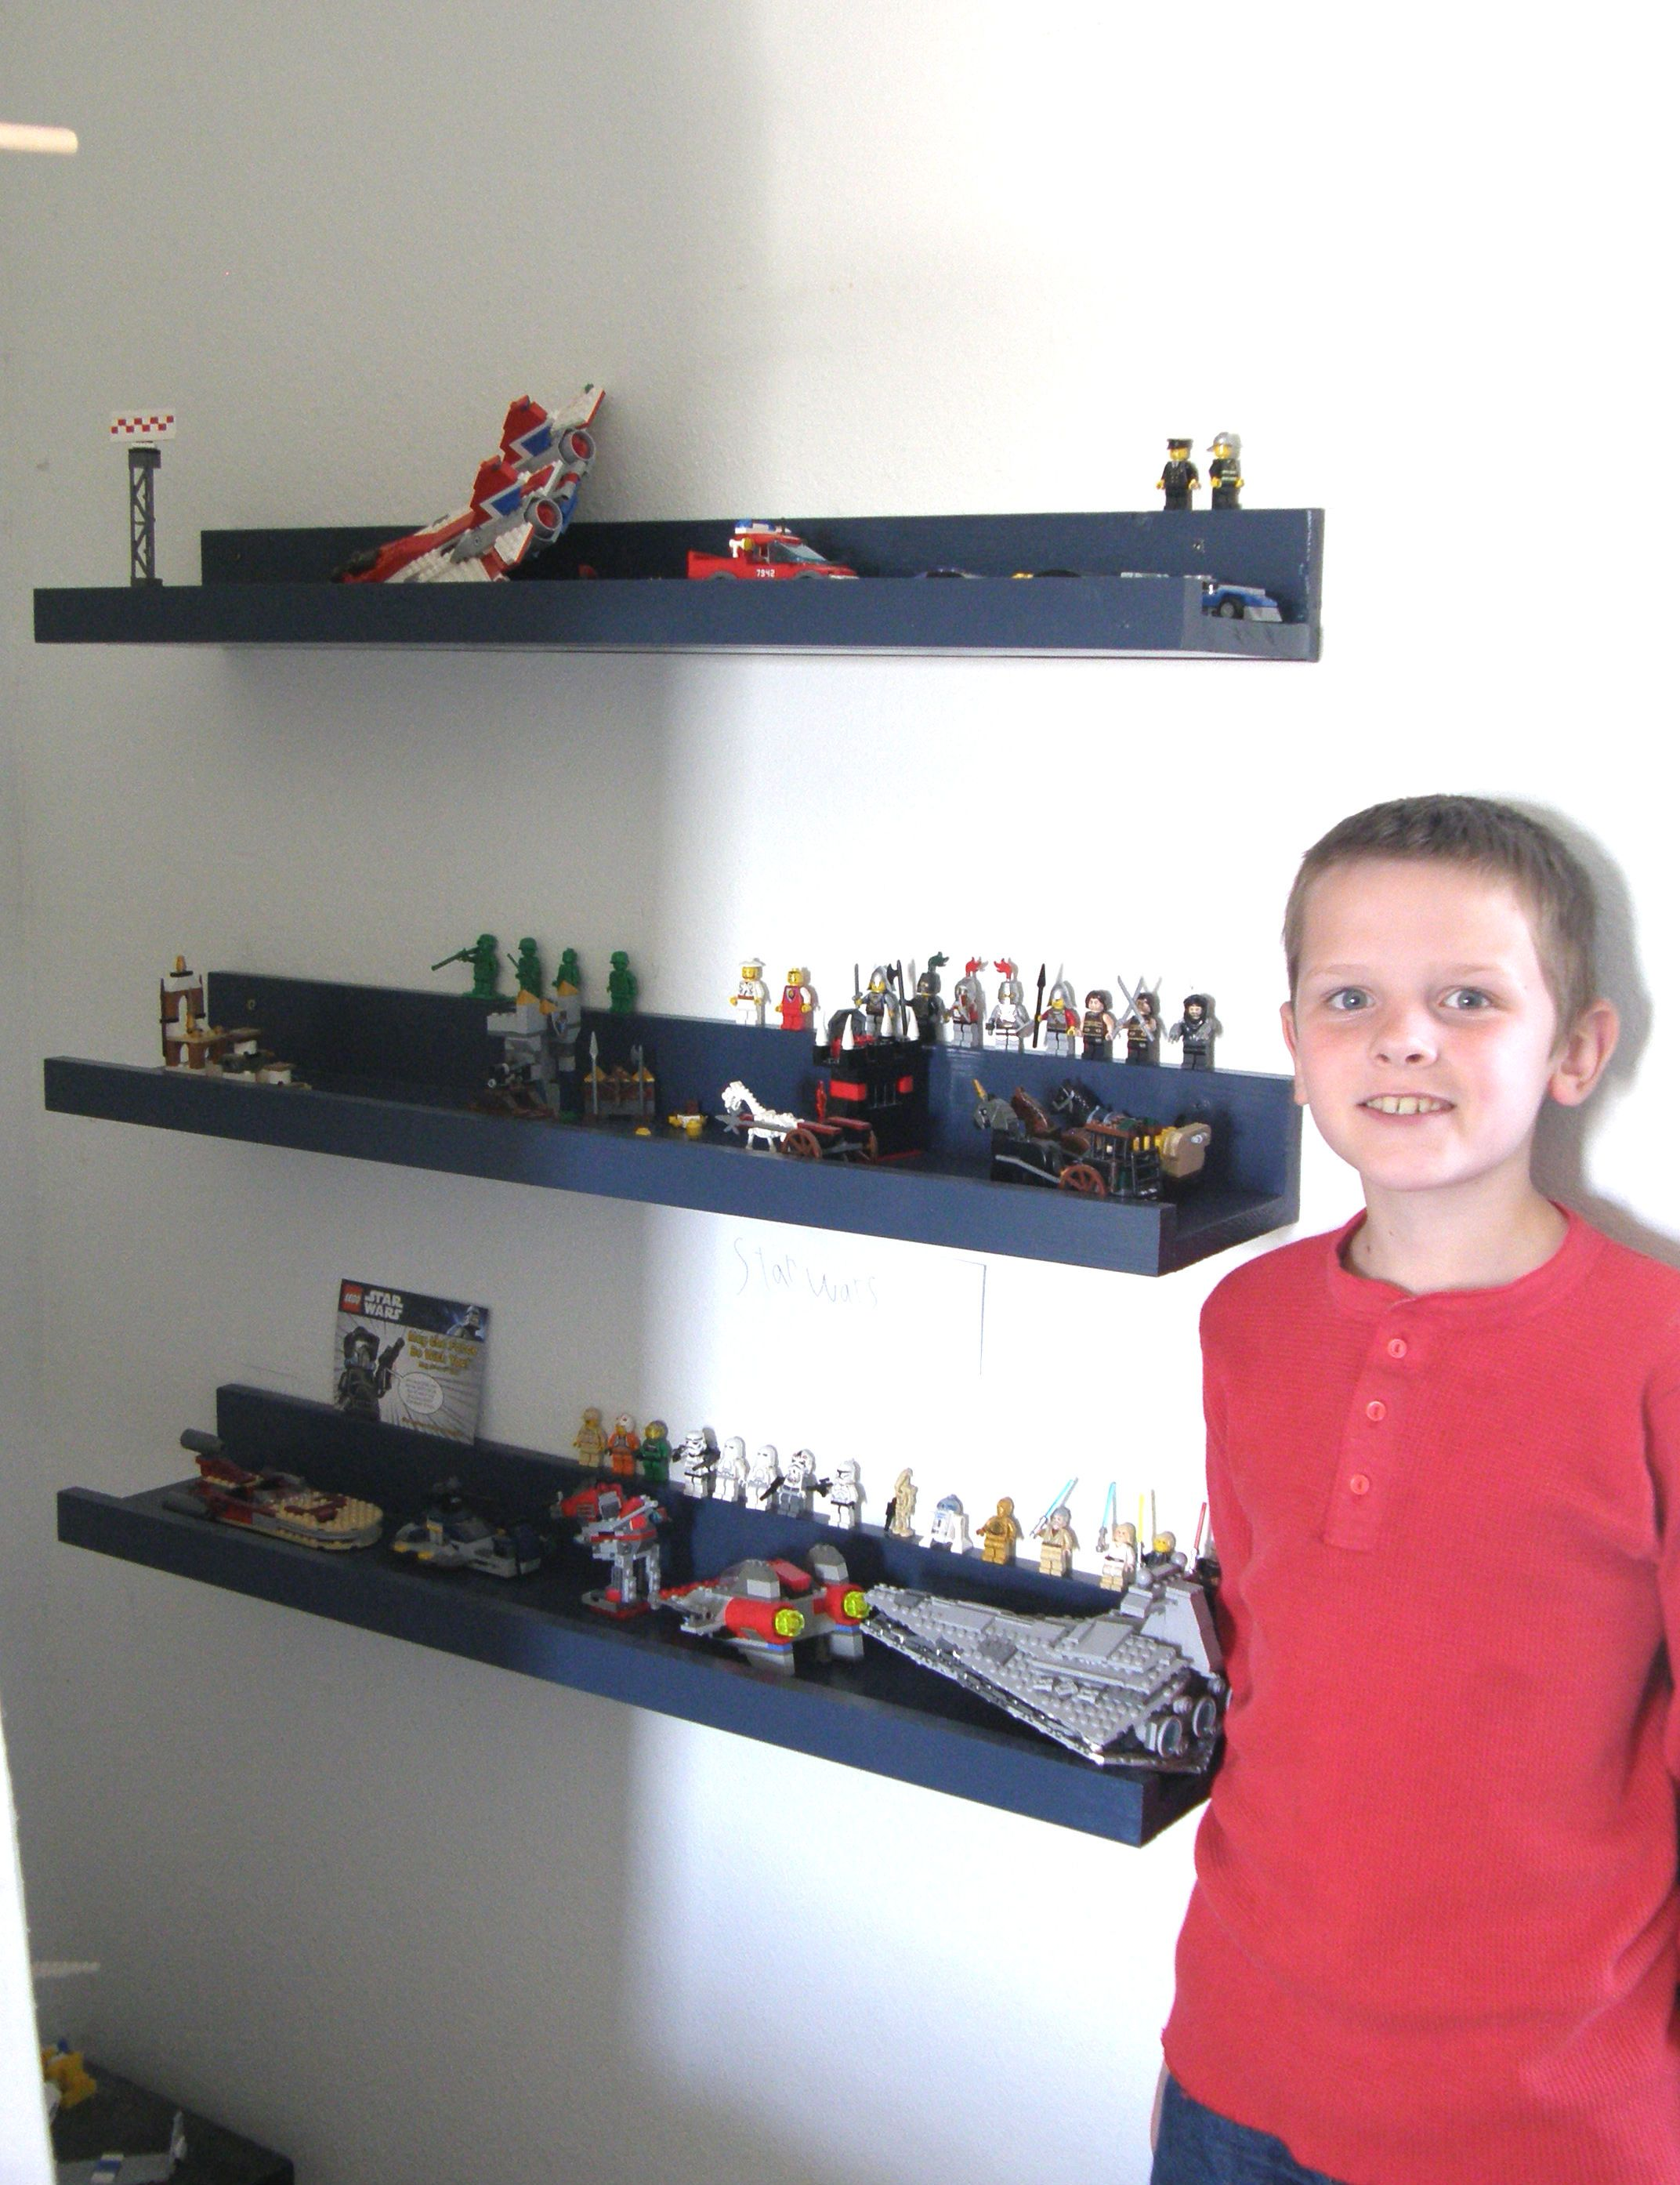 Lego Display Shelves | Do It Yourself Home Projects From Ana